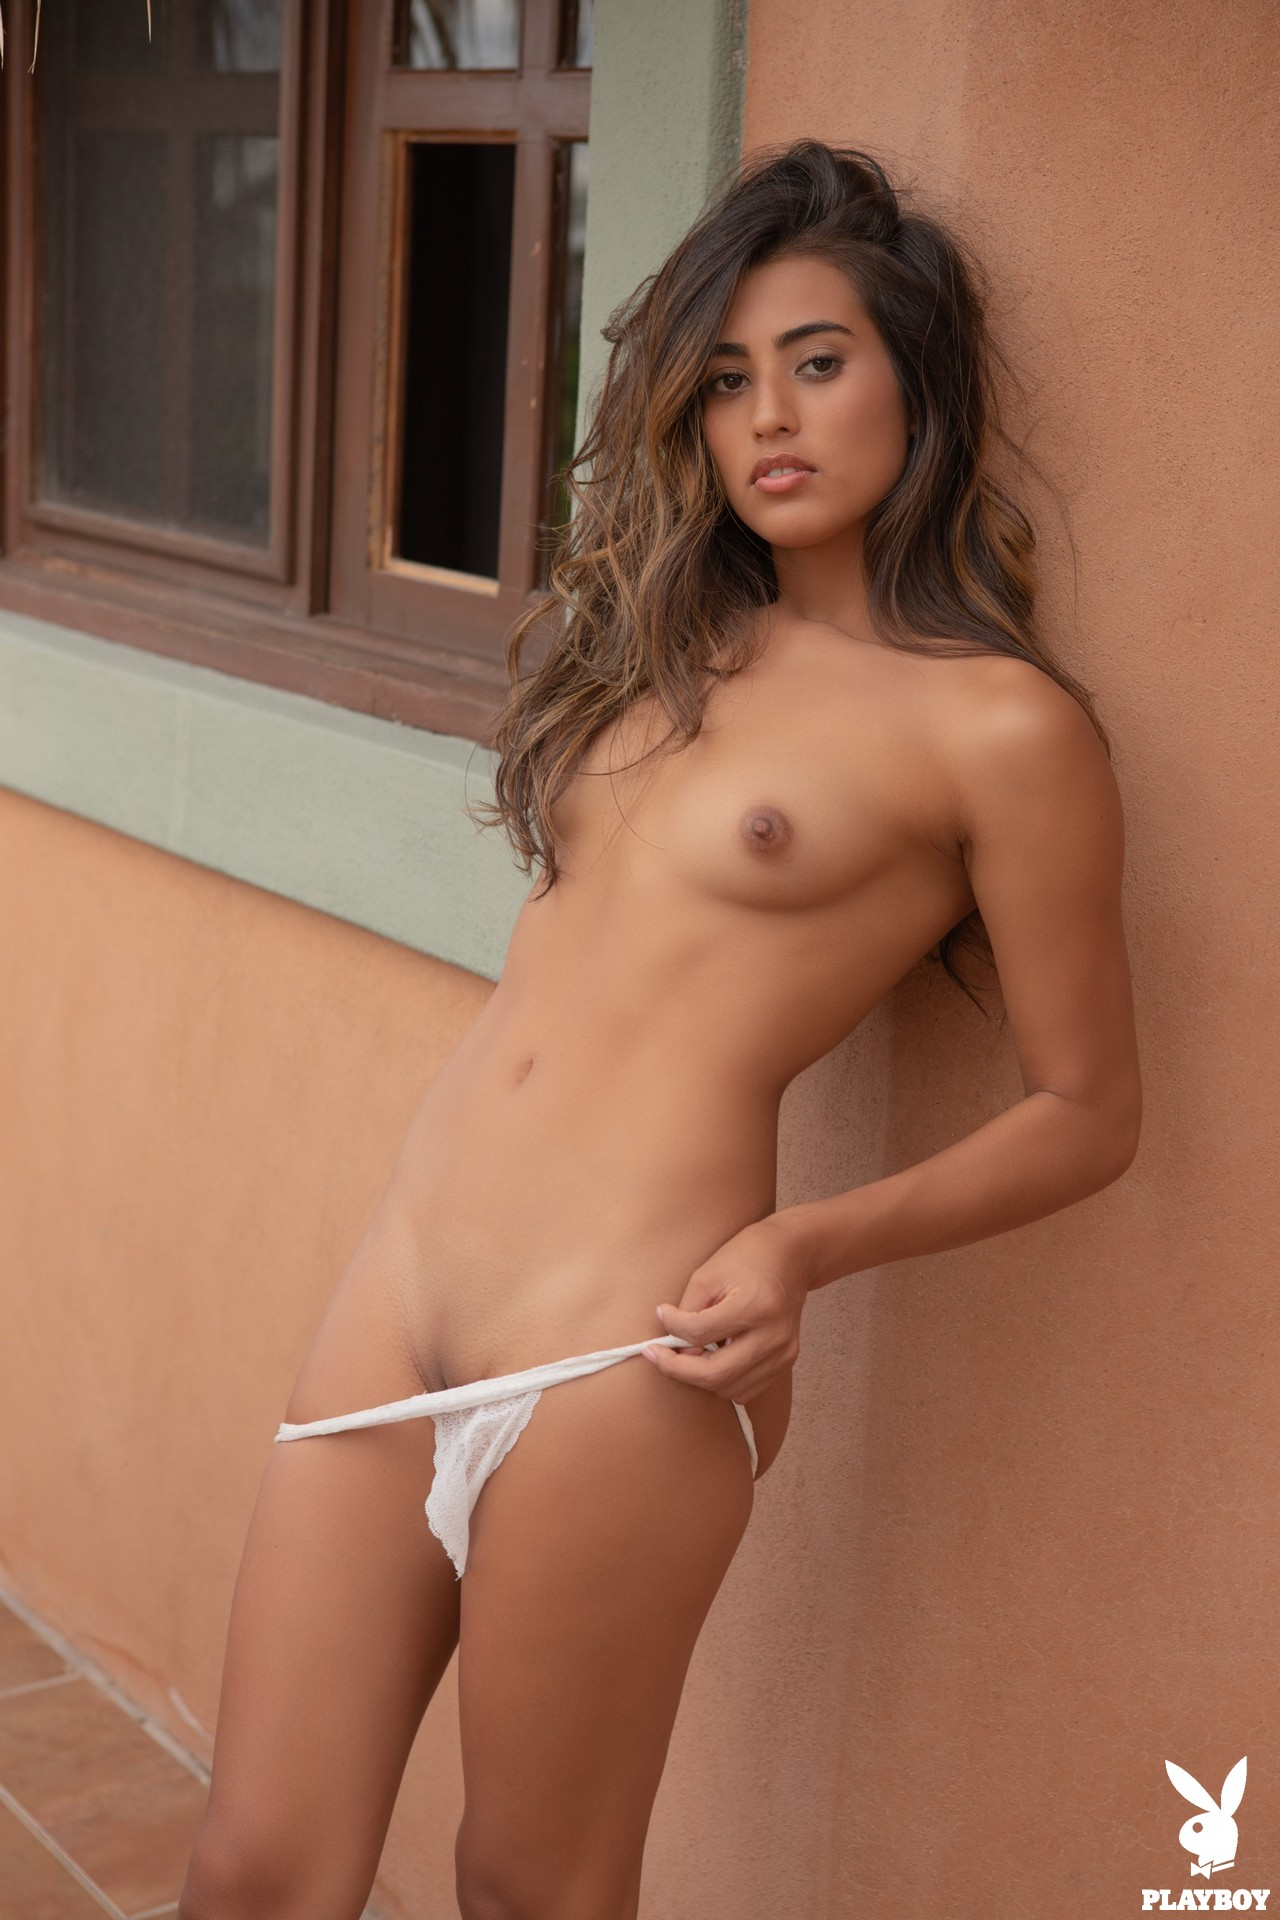 Katherinne Sofia in Finding Bliss - Playboy Plus 8